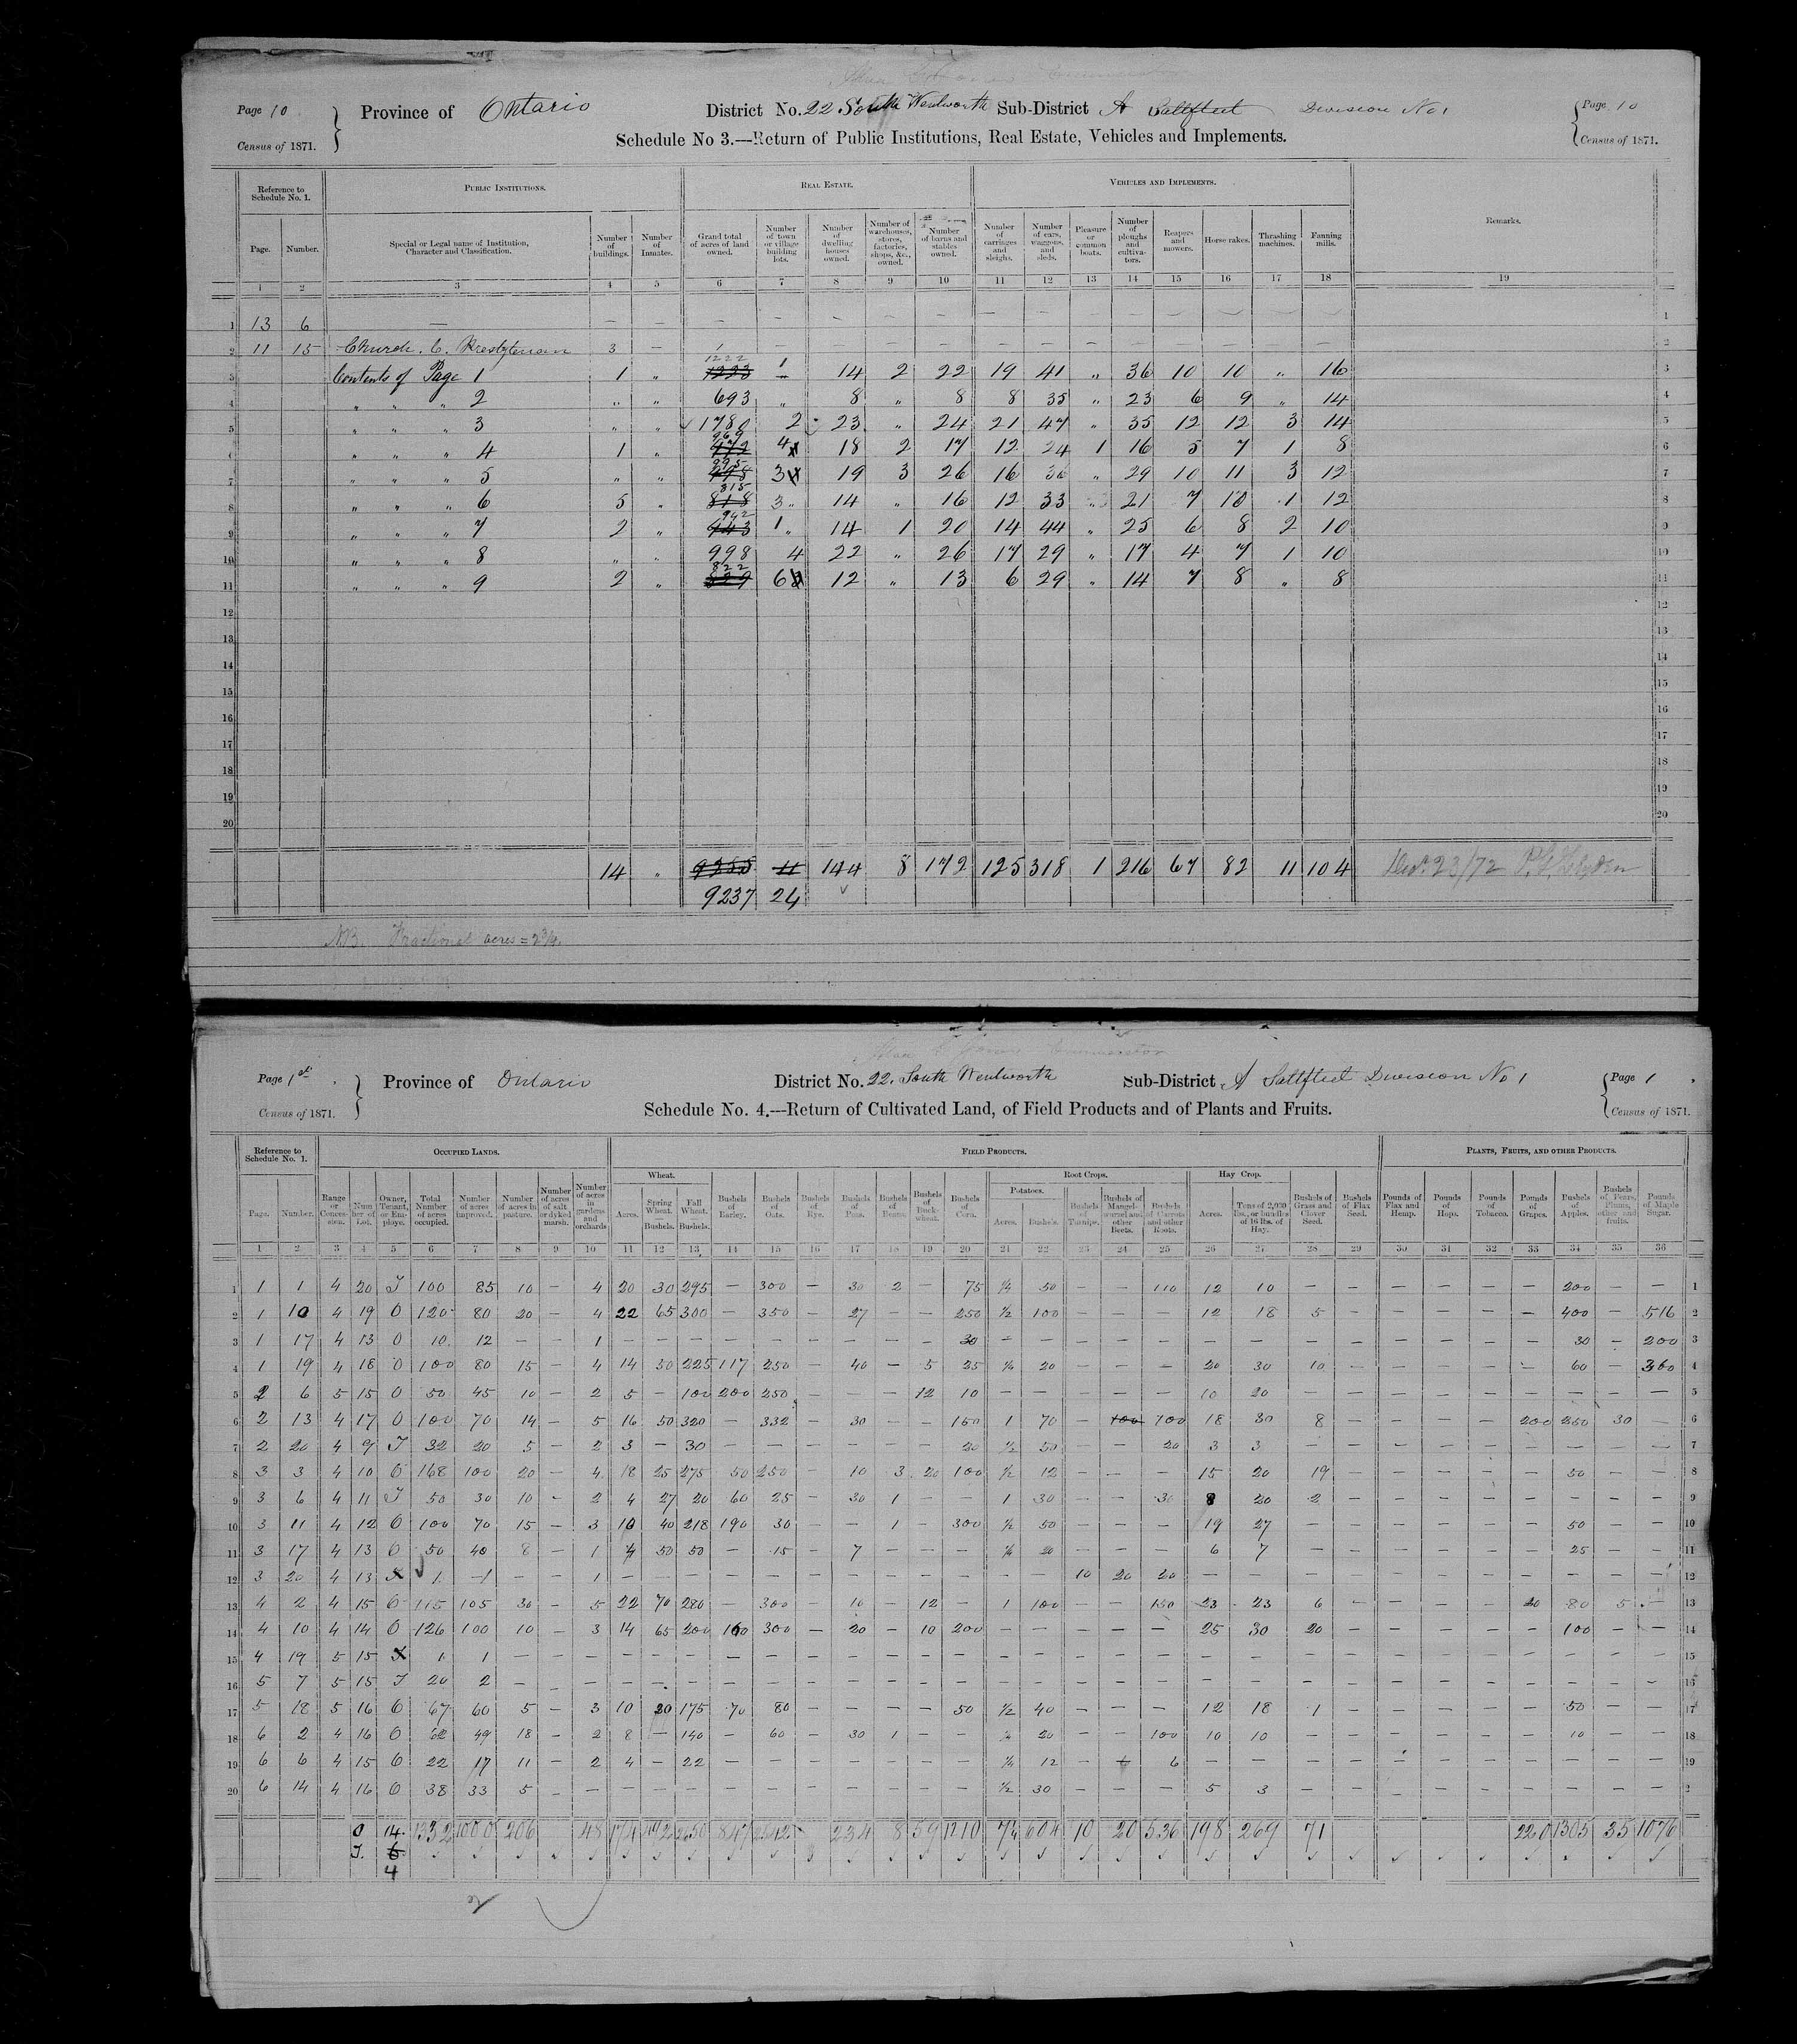 Title: Census of Canada, 1871 - Mikan Number: 142105 - Microform: c-9923